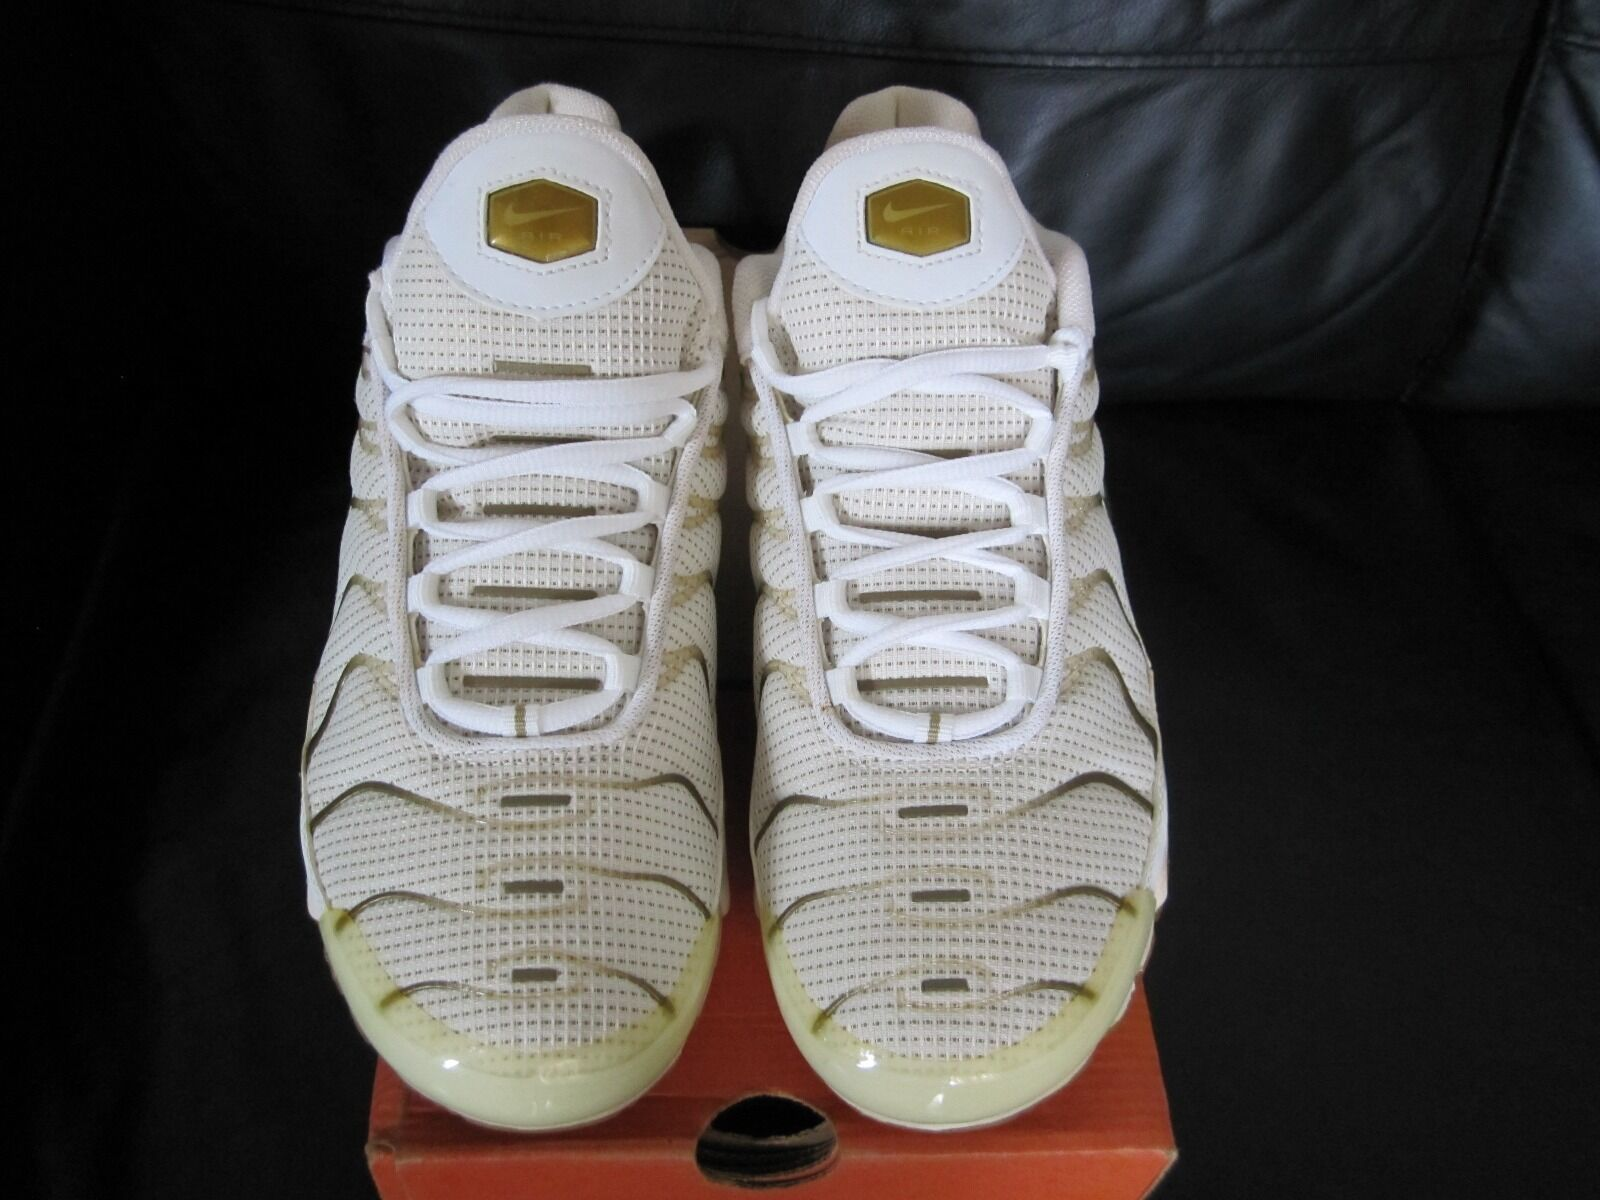 Nike D.S 2000 Air Max Plus Limited Edition U.K